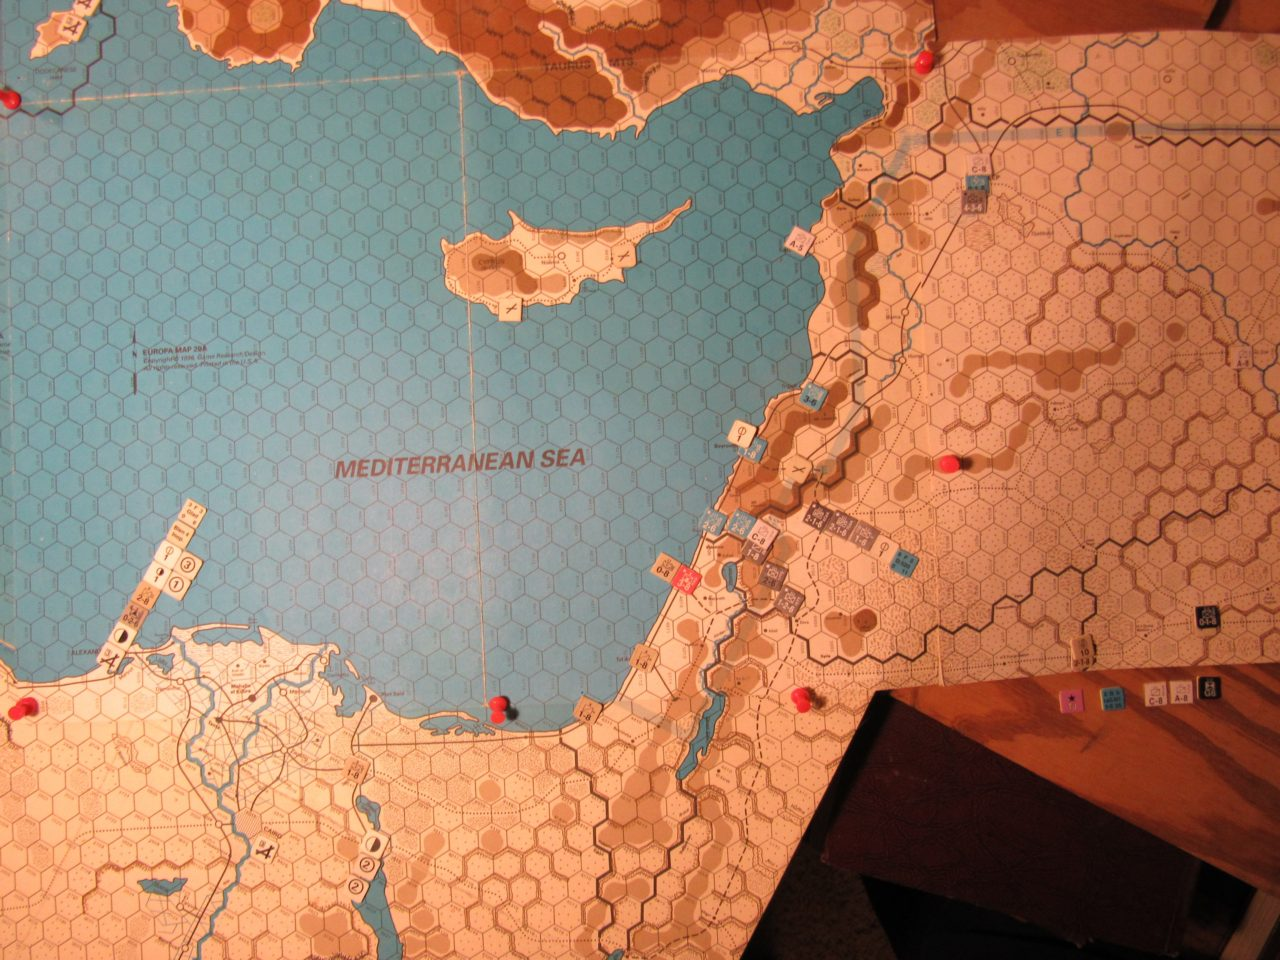 WW ME/ER-II/Crete Scenario Apr II 41 Allied EOT dispositions: eastern Egypt, Palestine, Trans-Jordan, and eastern Iraq